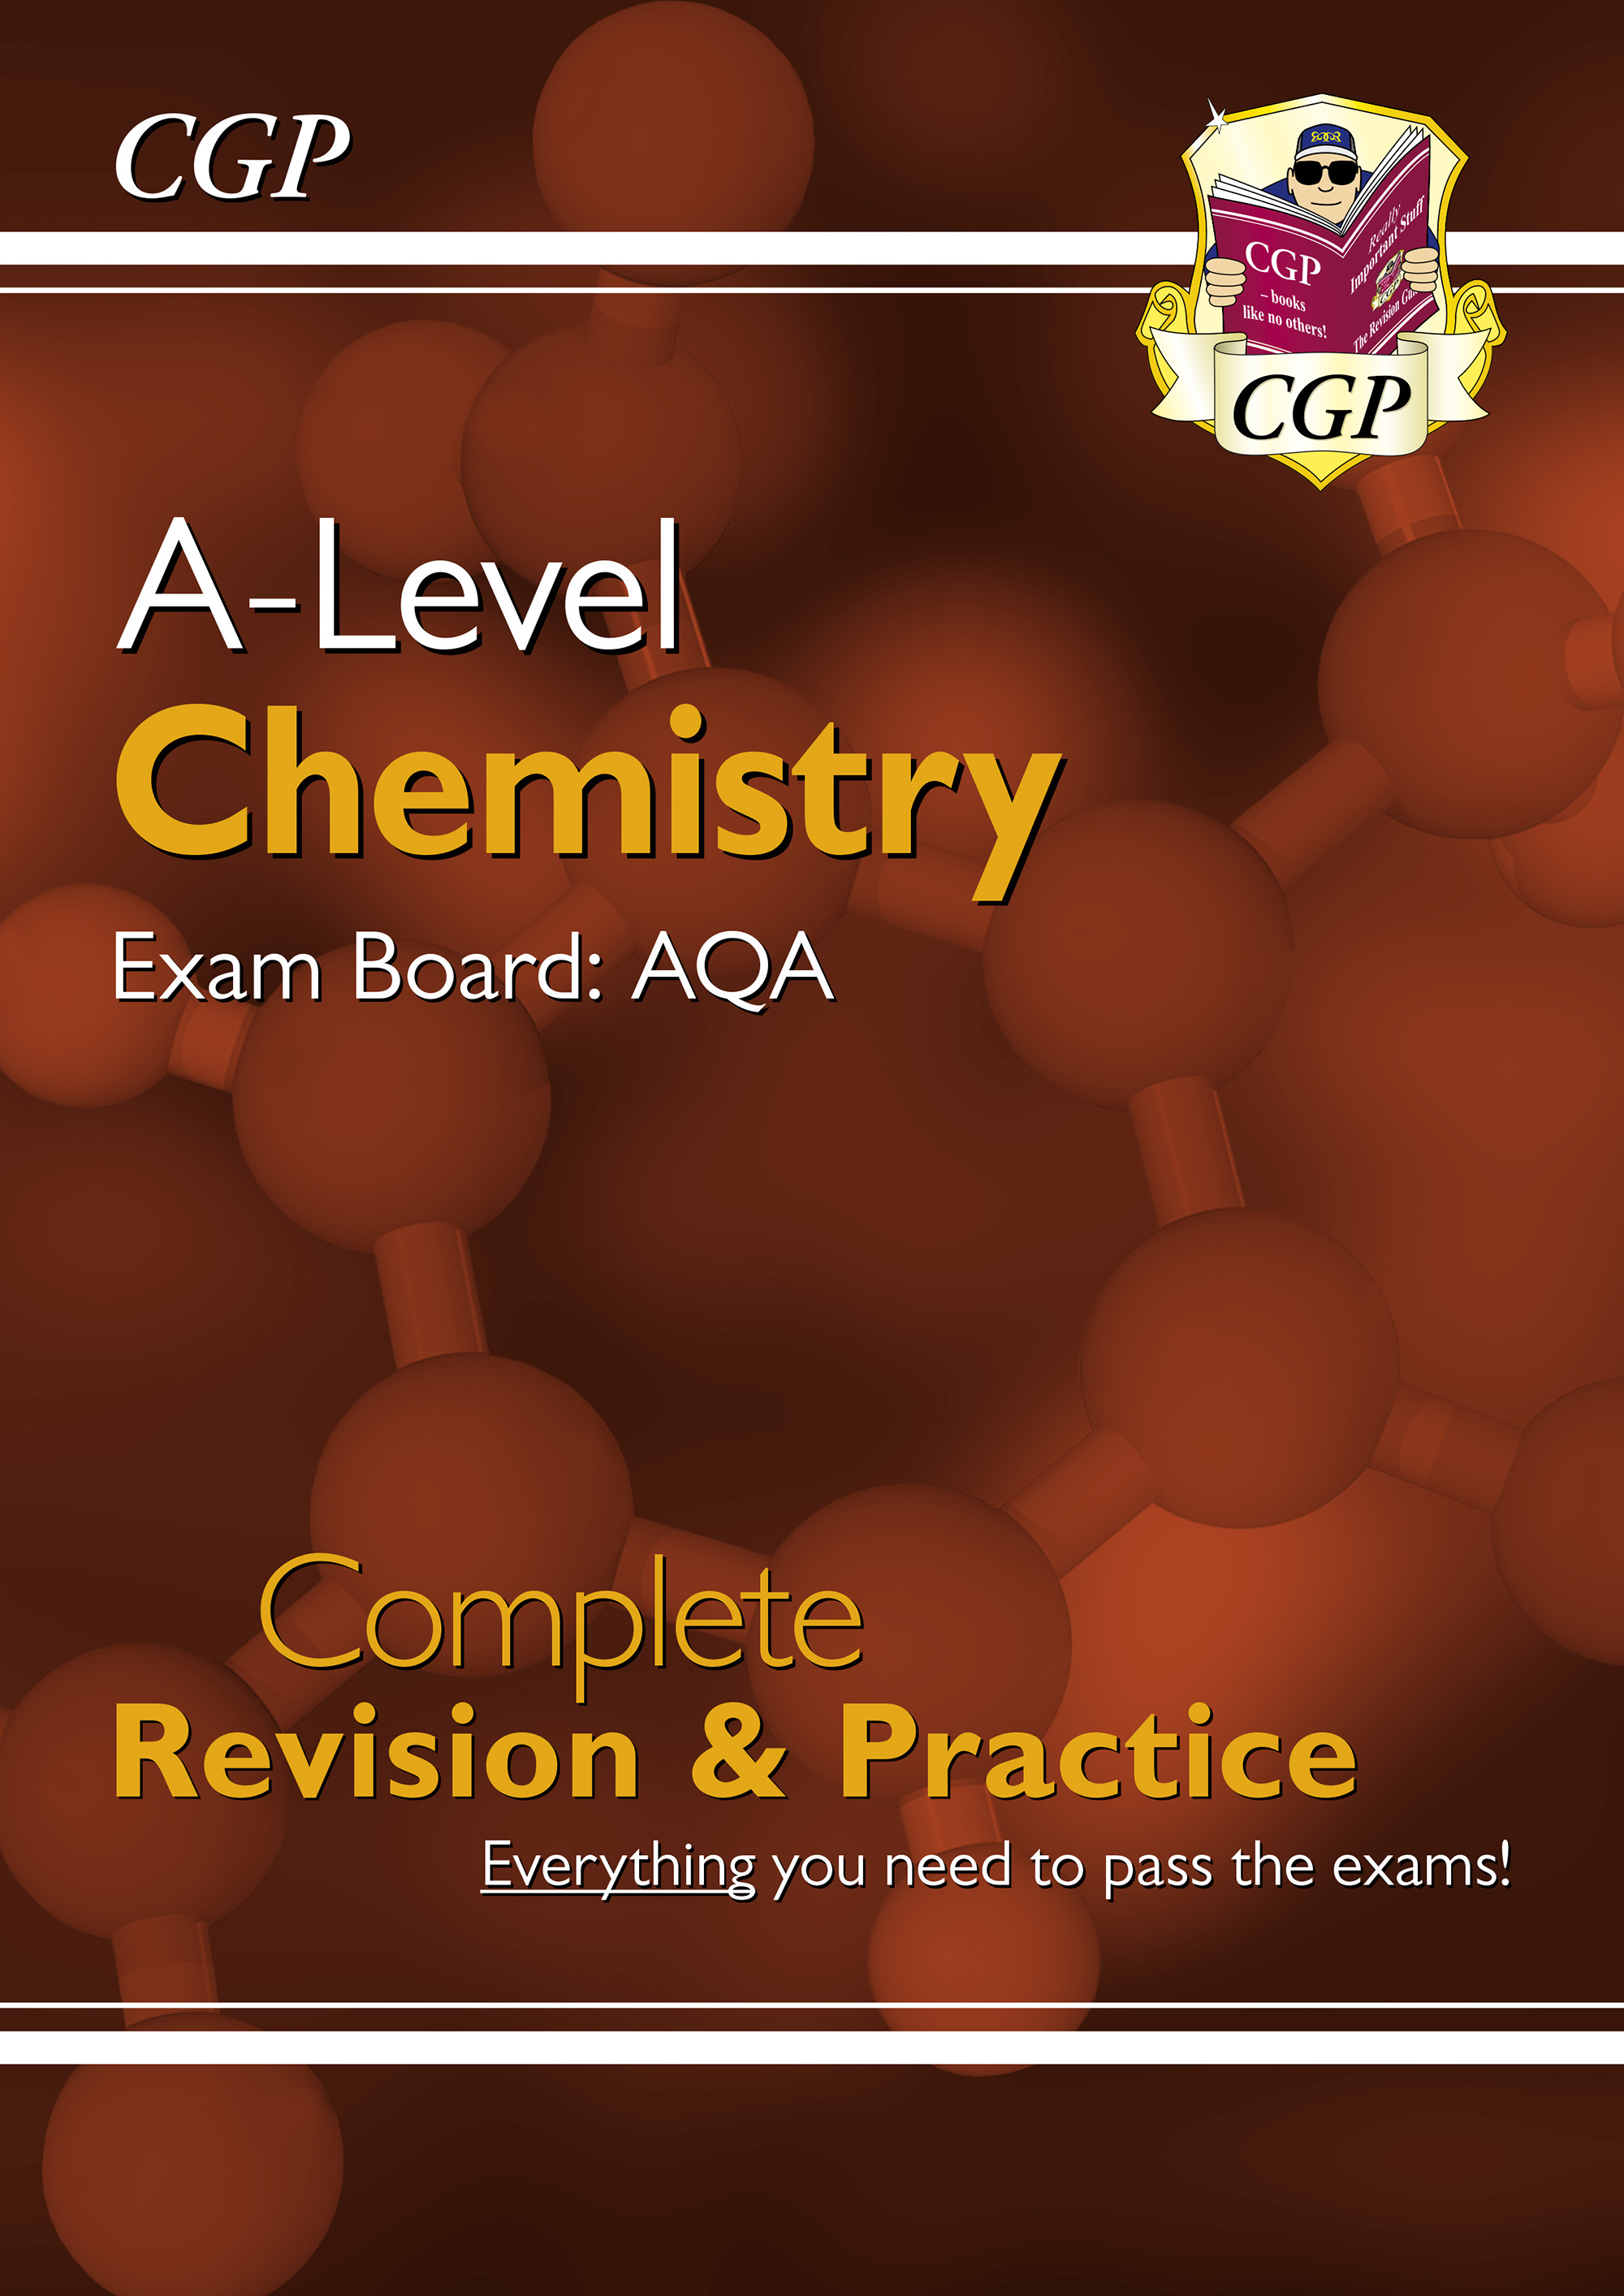 CAR73DK - New A-Level Chemistry for 2018: AQA Year 1 & 2 Complete Revision & Practice